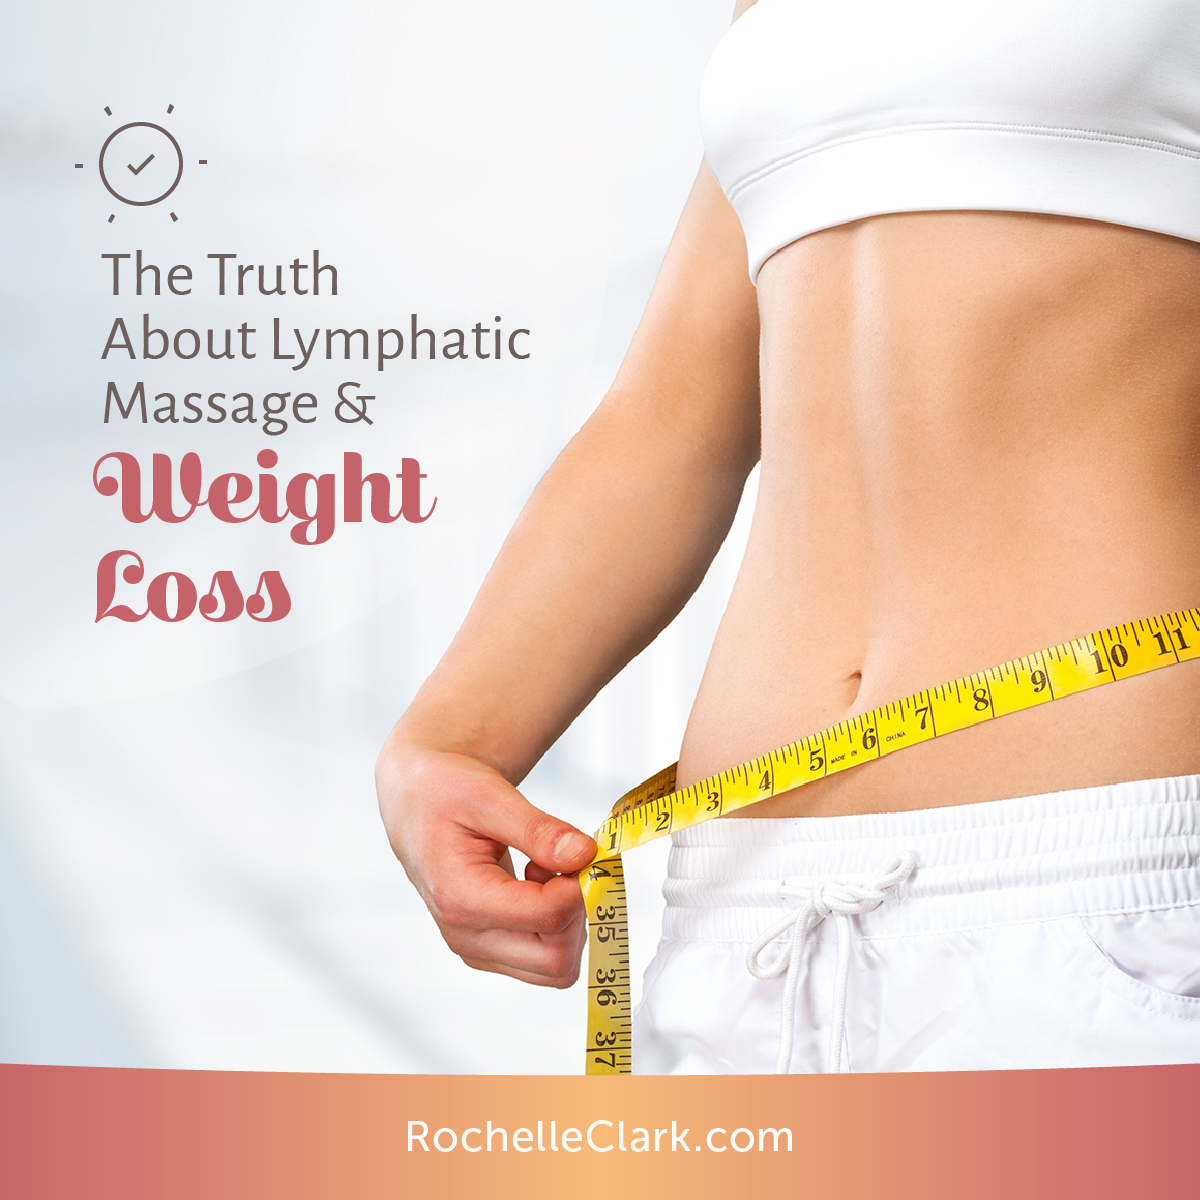 The Truth About Lymphatic Massage & Weight Loss - The Art of